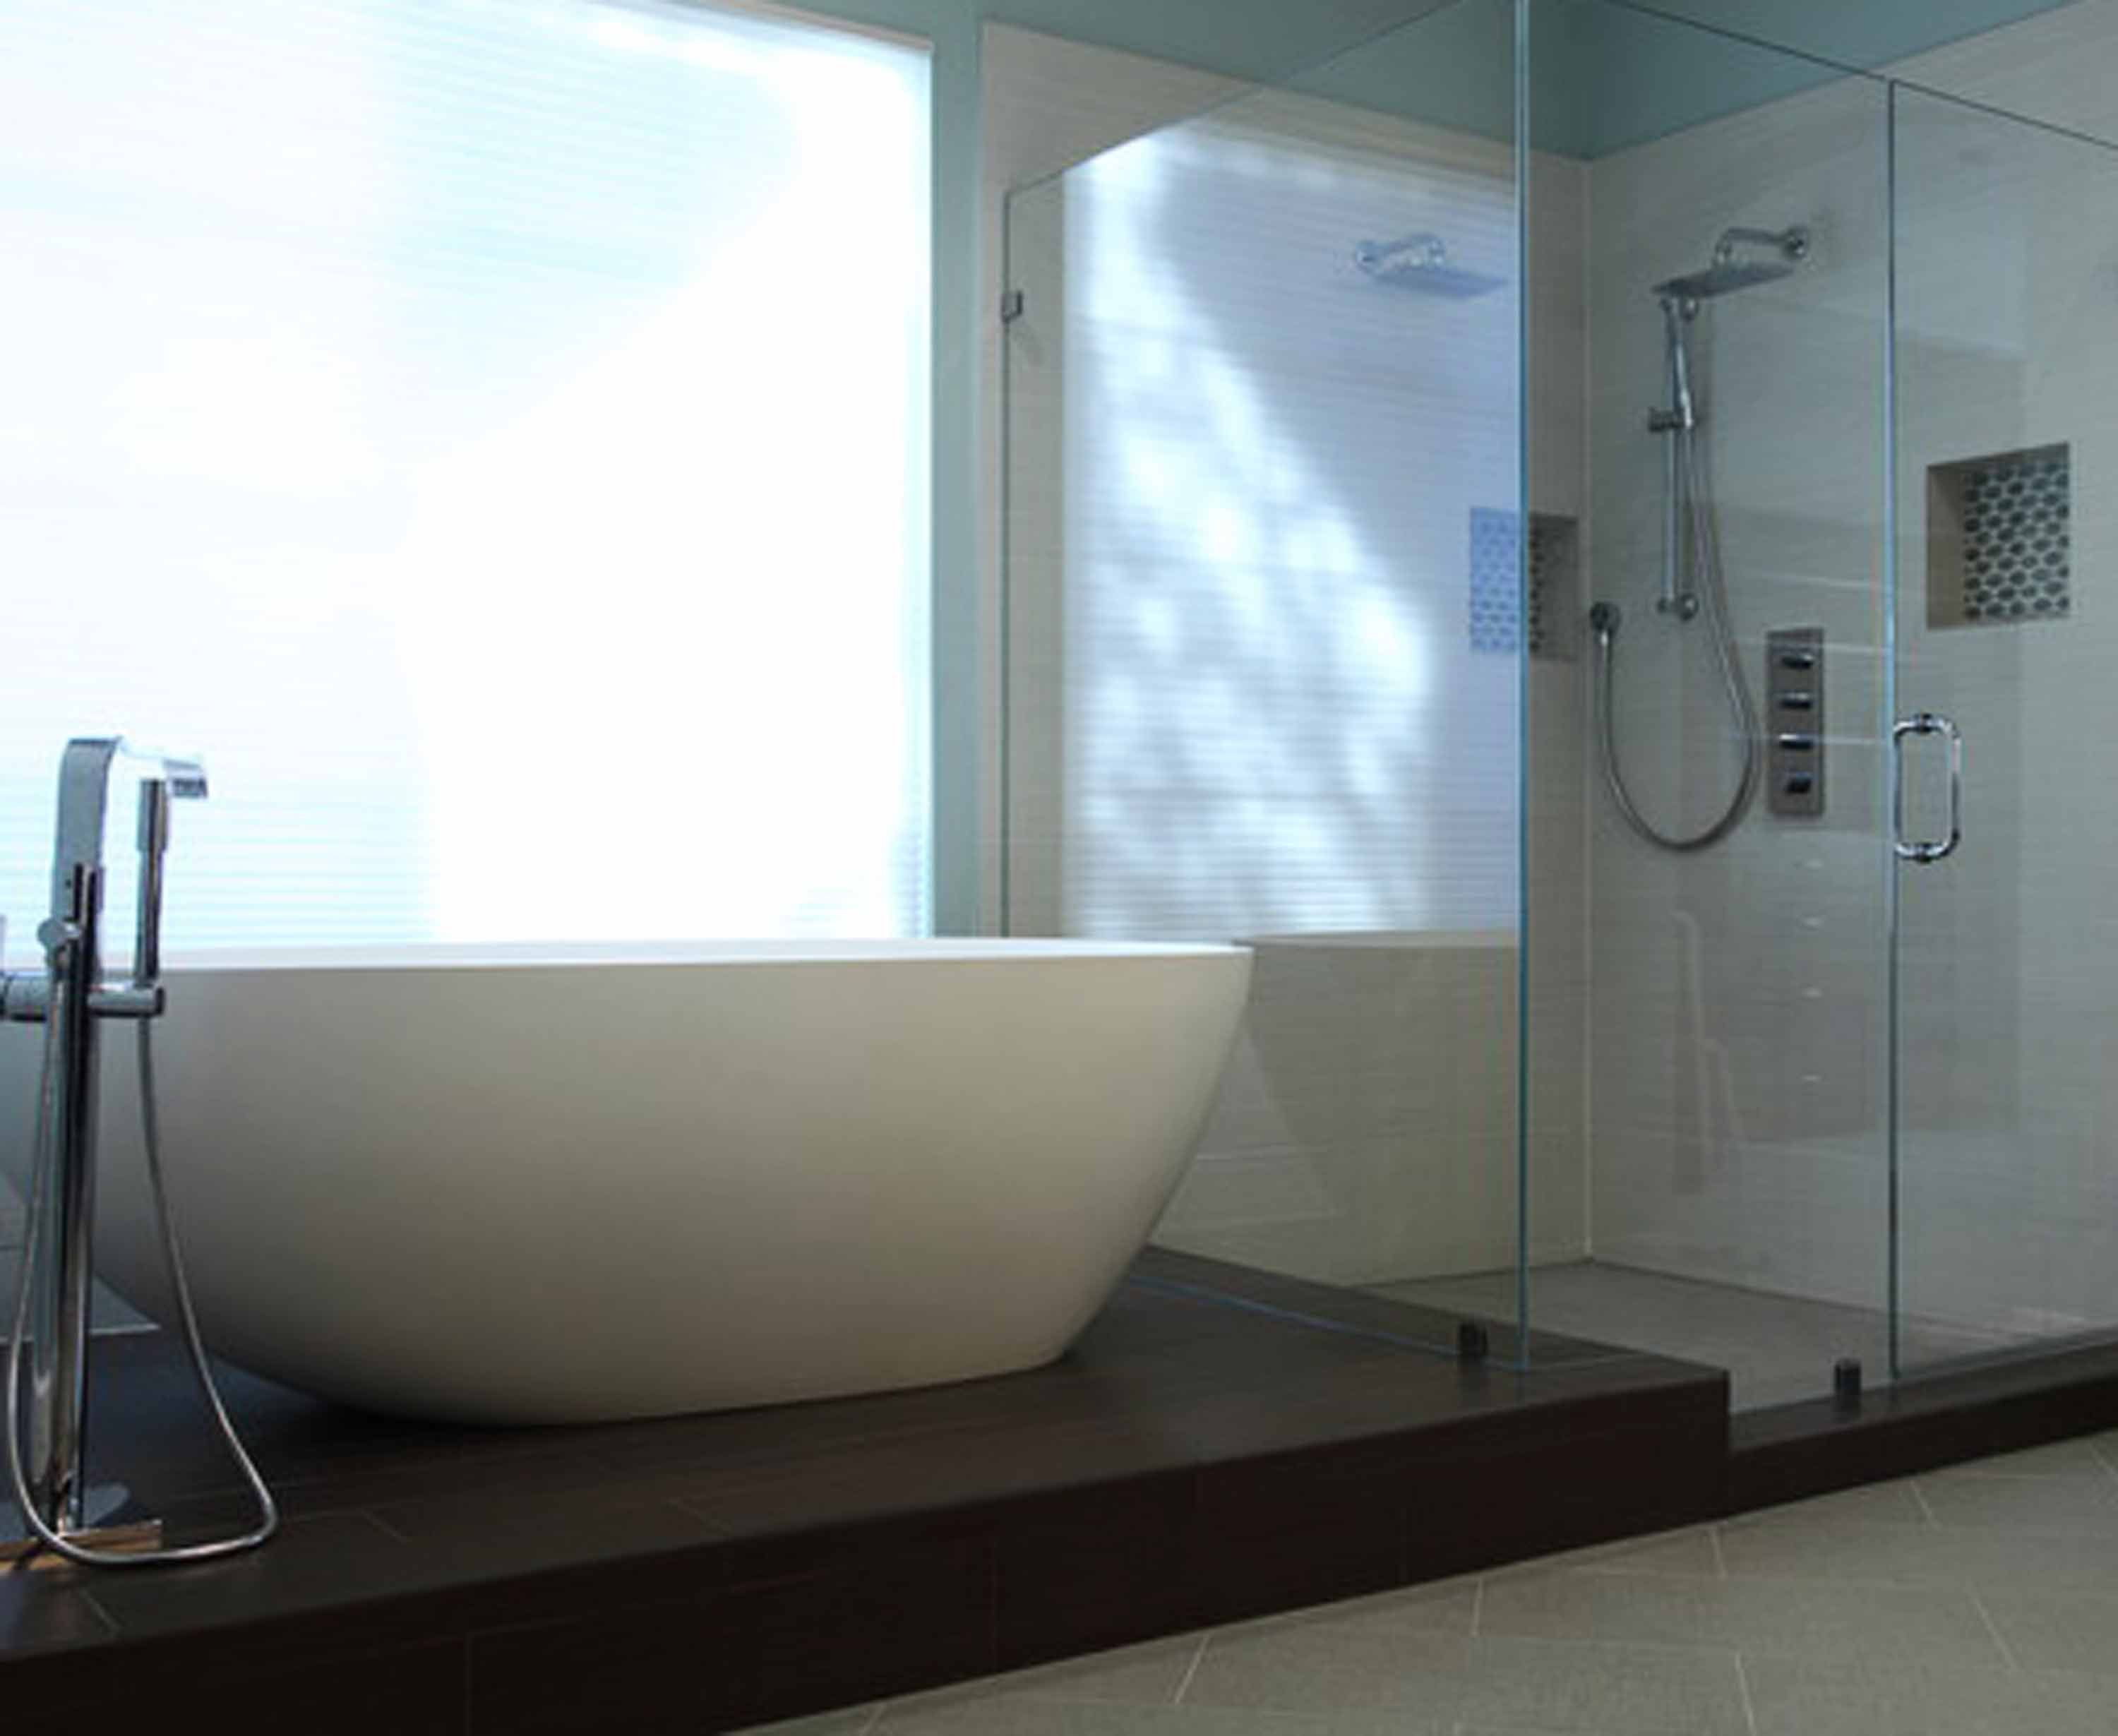 Contemporary Bathroom Standalone Bathtub Stainless Steel Faucet Handheld Glass Shower Cabin Separated Walls Handle Ceramic Flooring Tile Gray Wall Paint